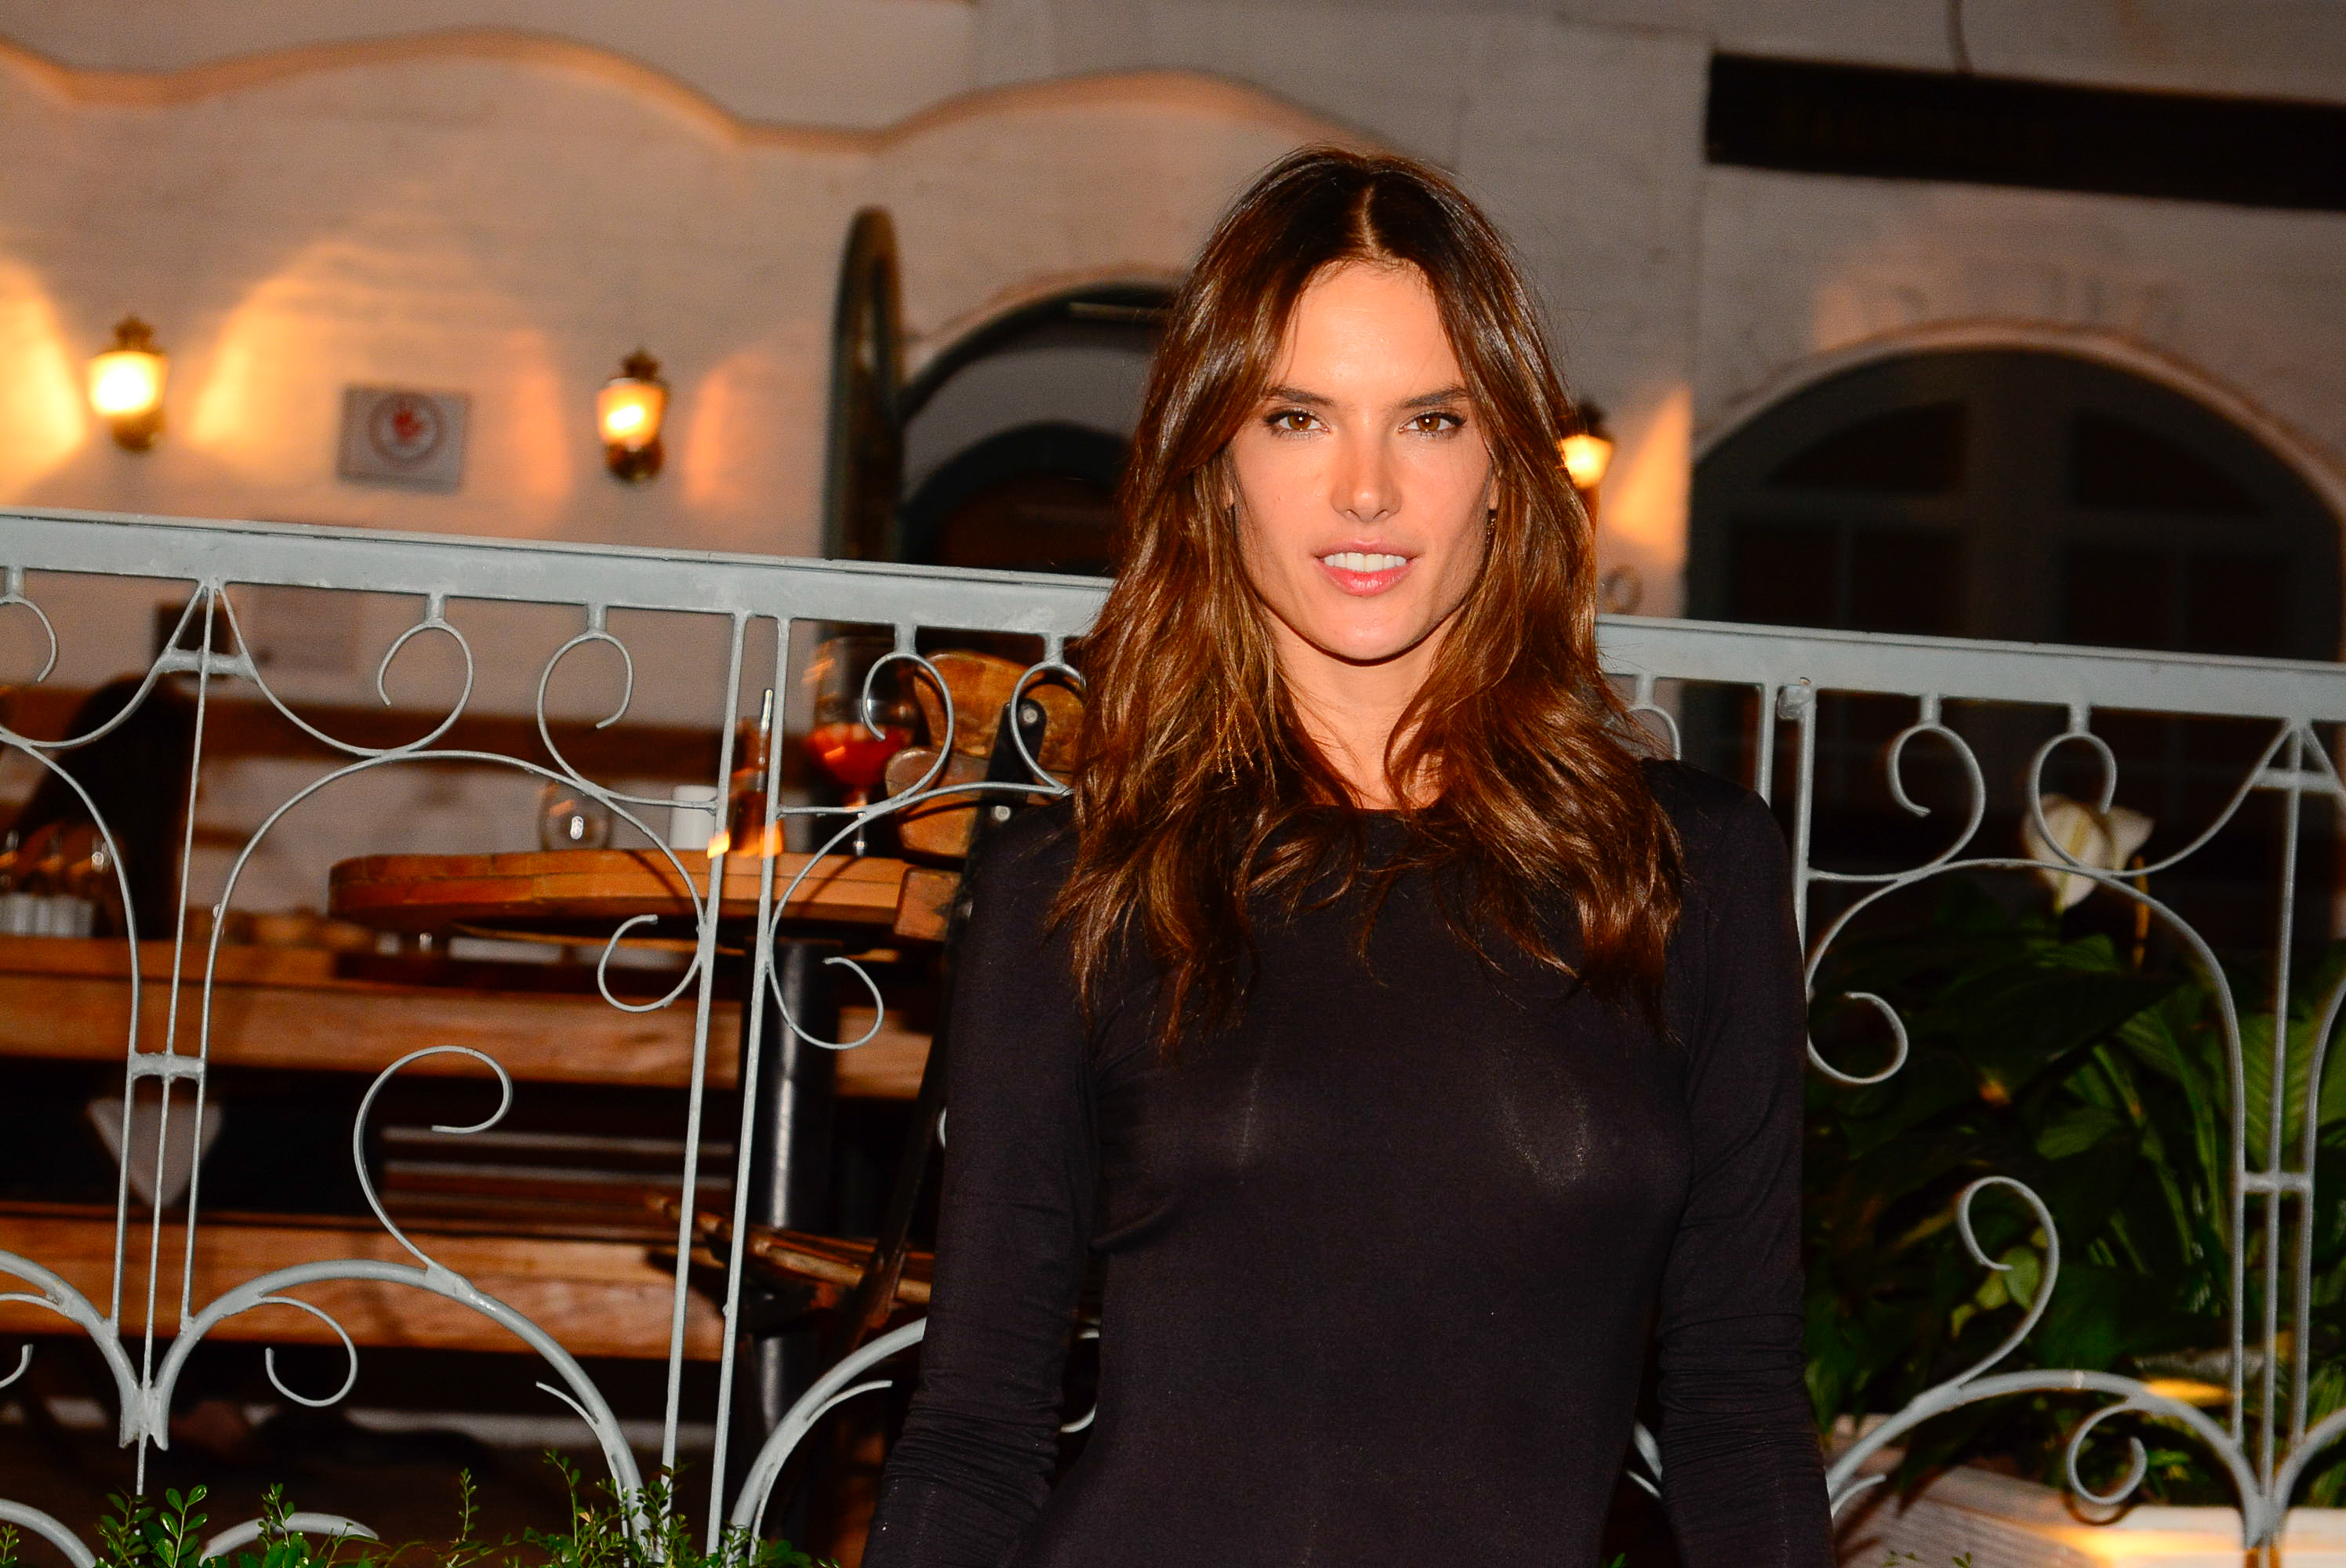 Alessandra Ambrosio Braless photos  (3)